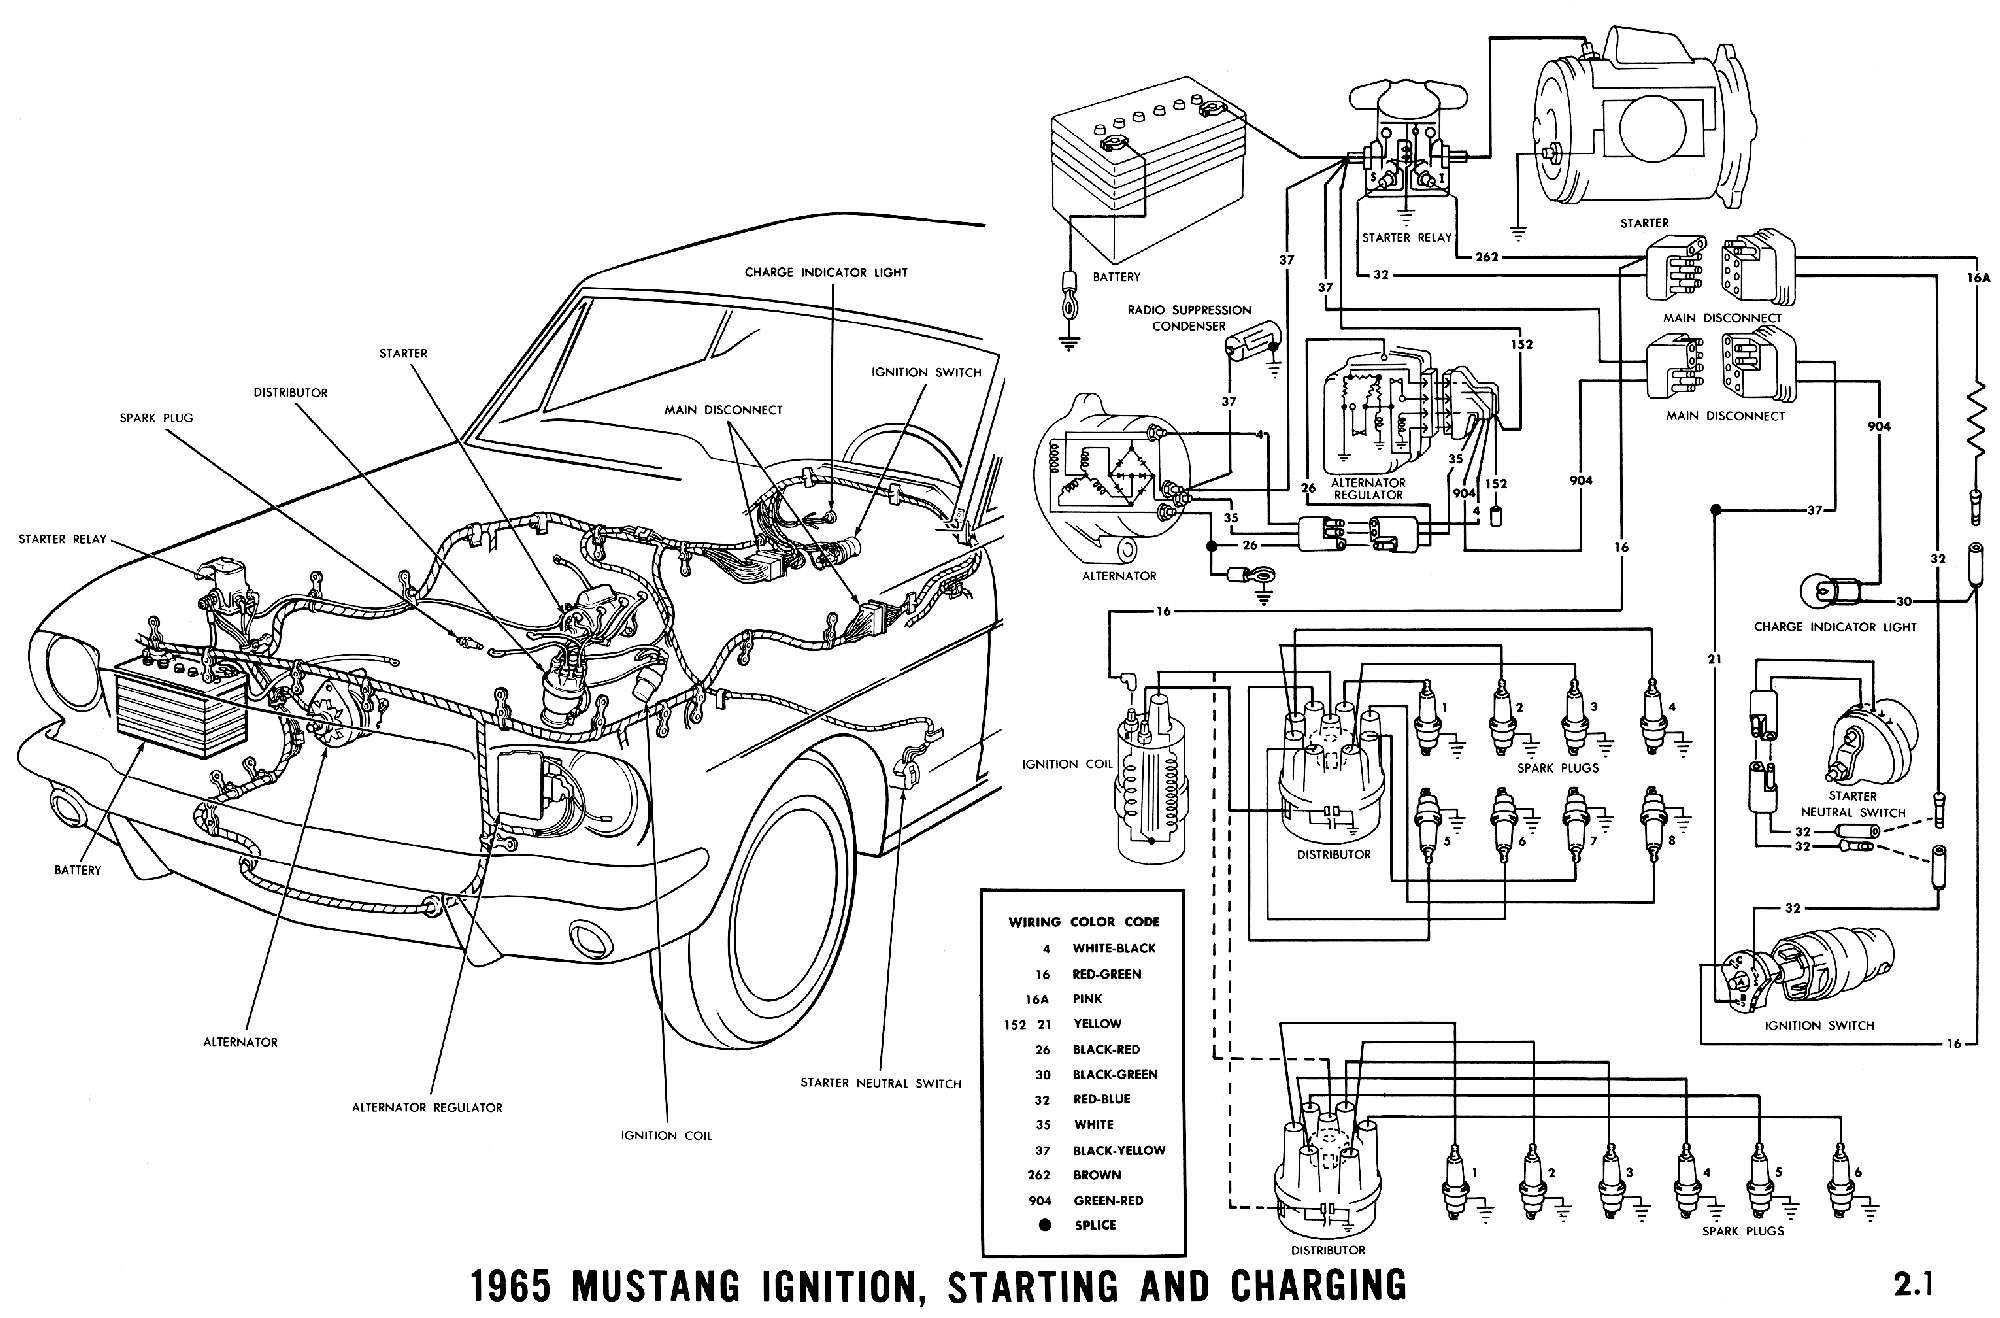 Camshaft Parts Diagram 2015 Mustang Engine Diagram Engine Car Parts and Ponent Diagram Of Camshaft Parts Diagram